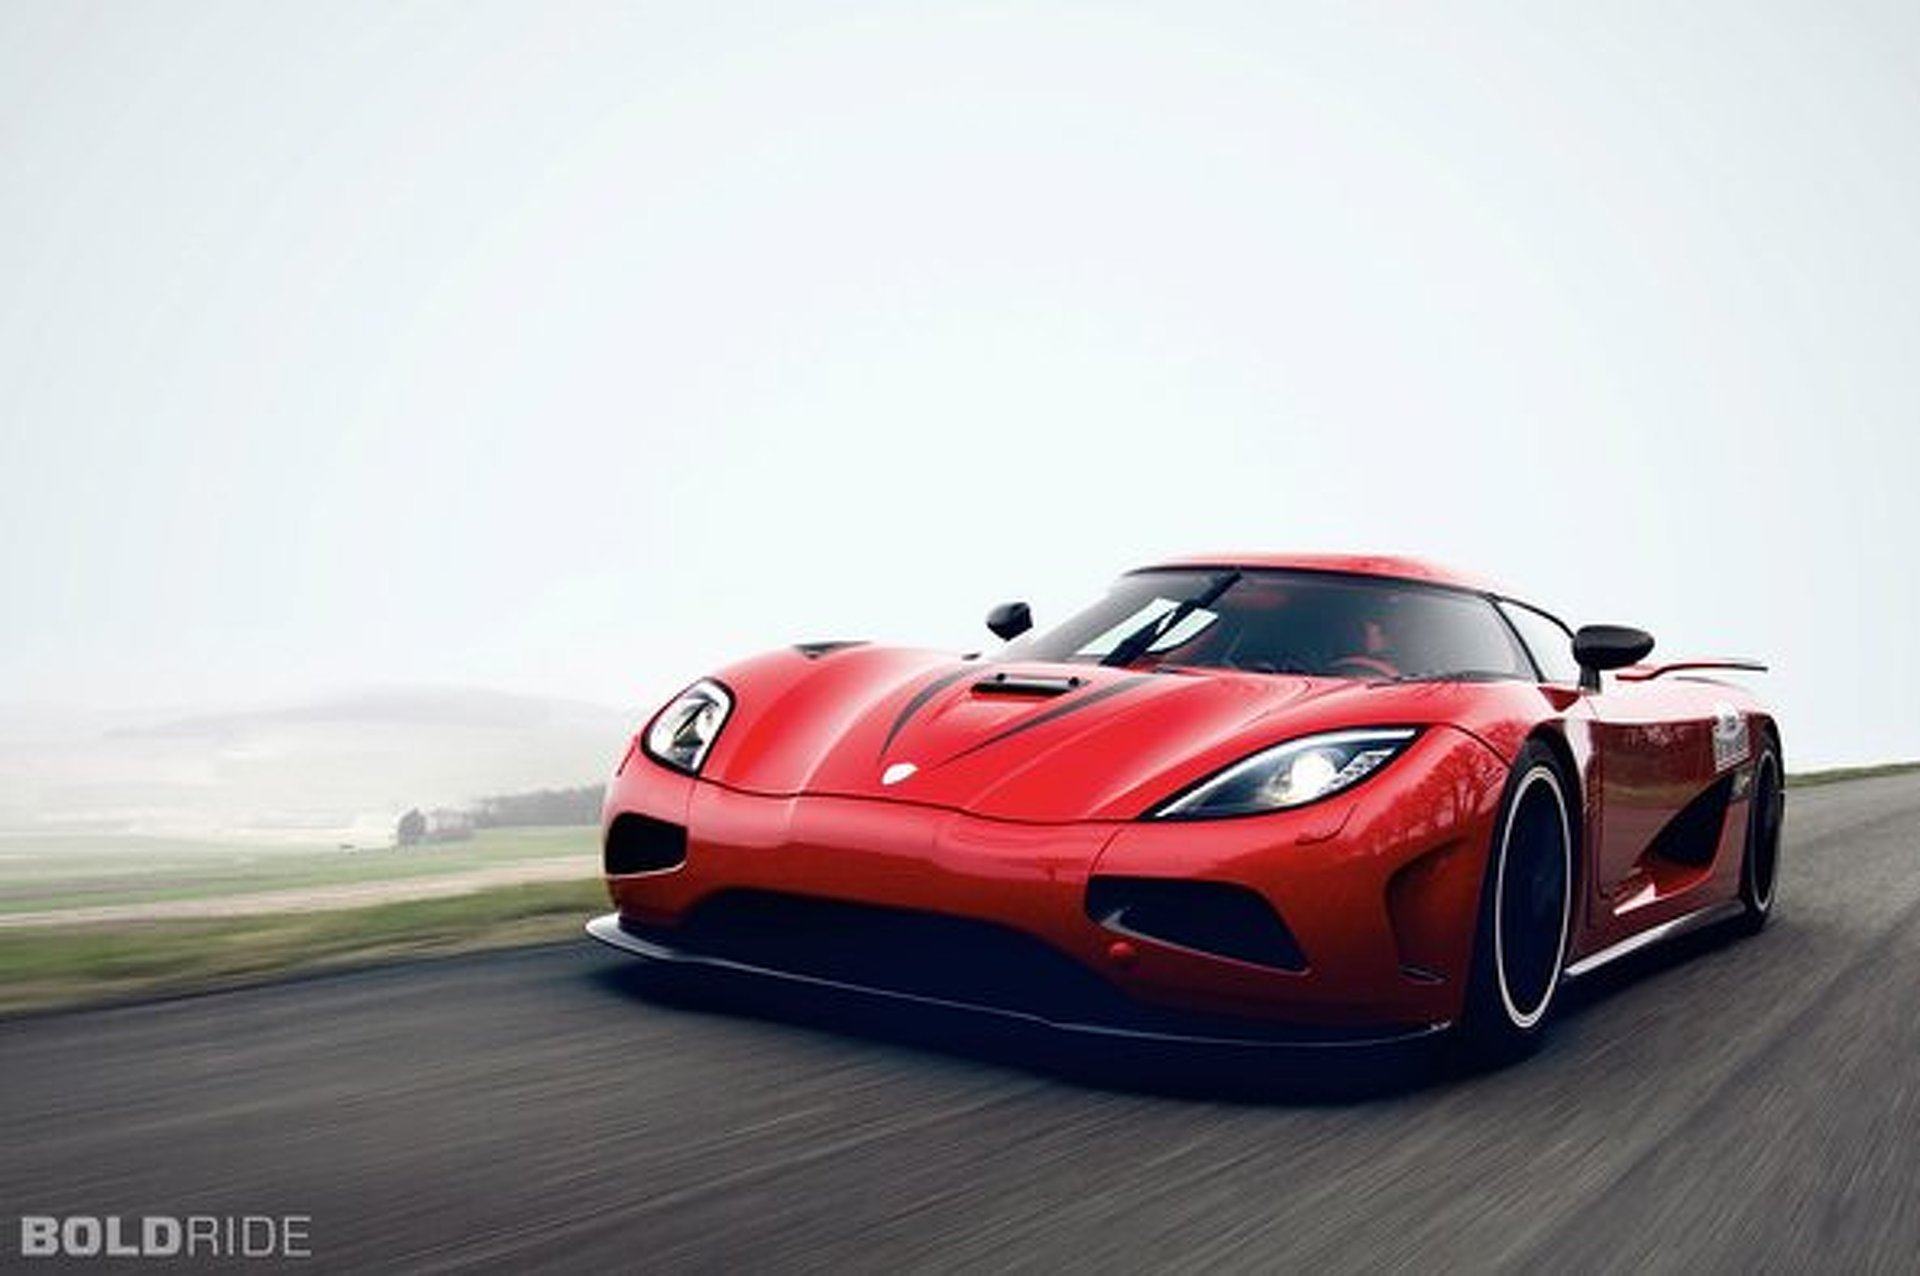 Koenigsegg Agera R Approved for Sale in U.S.